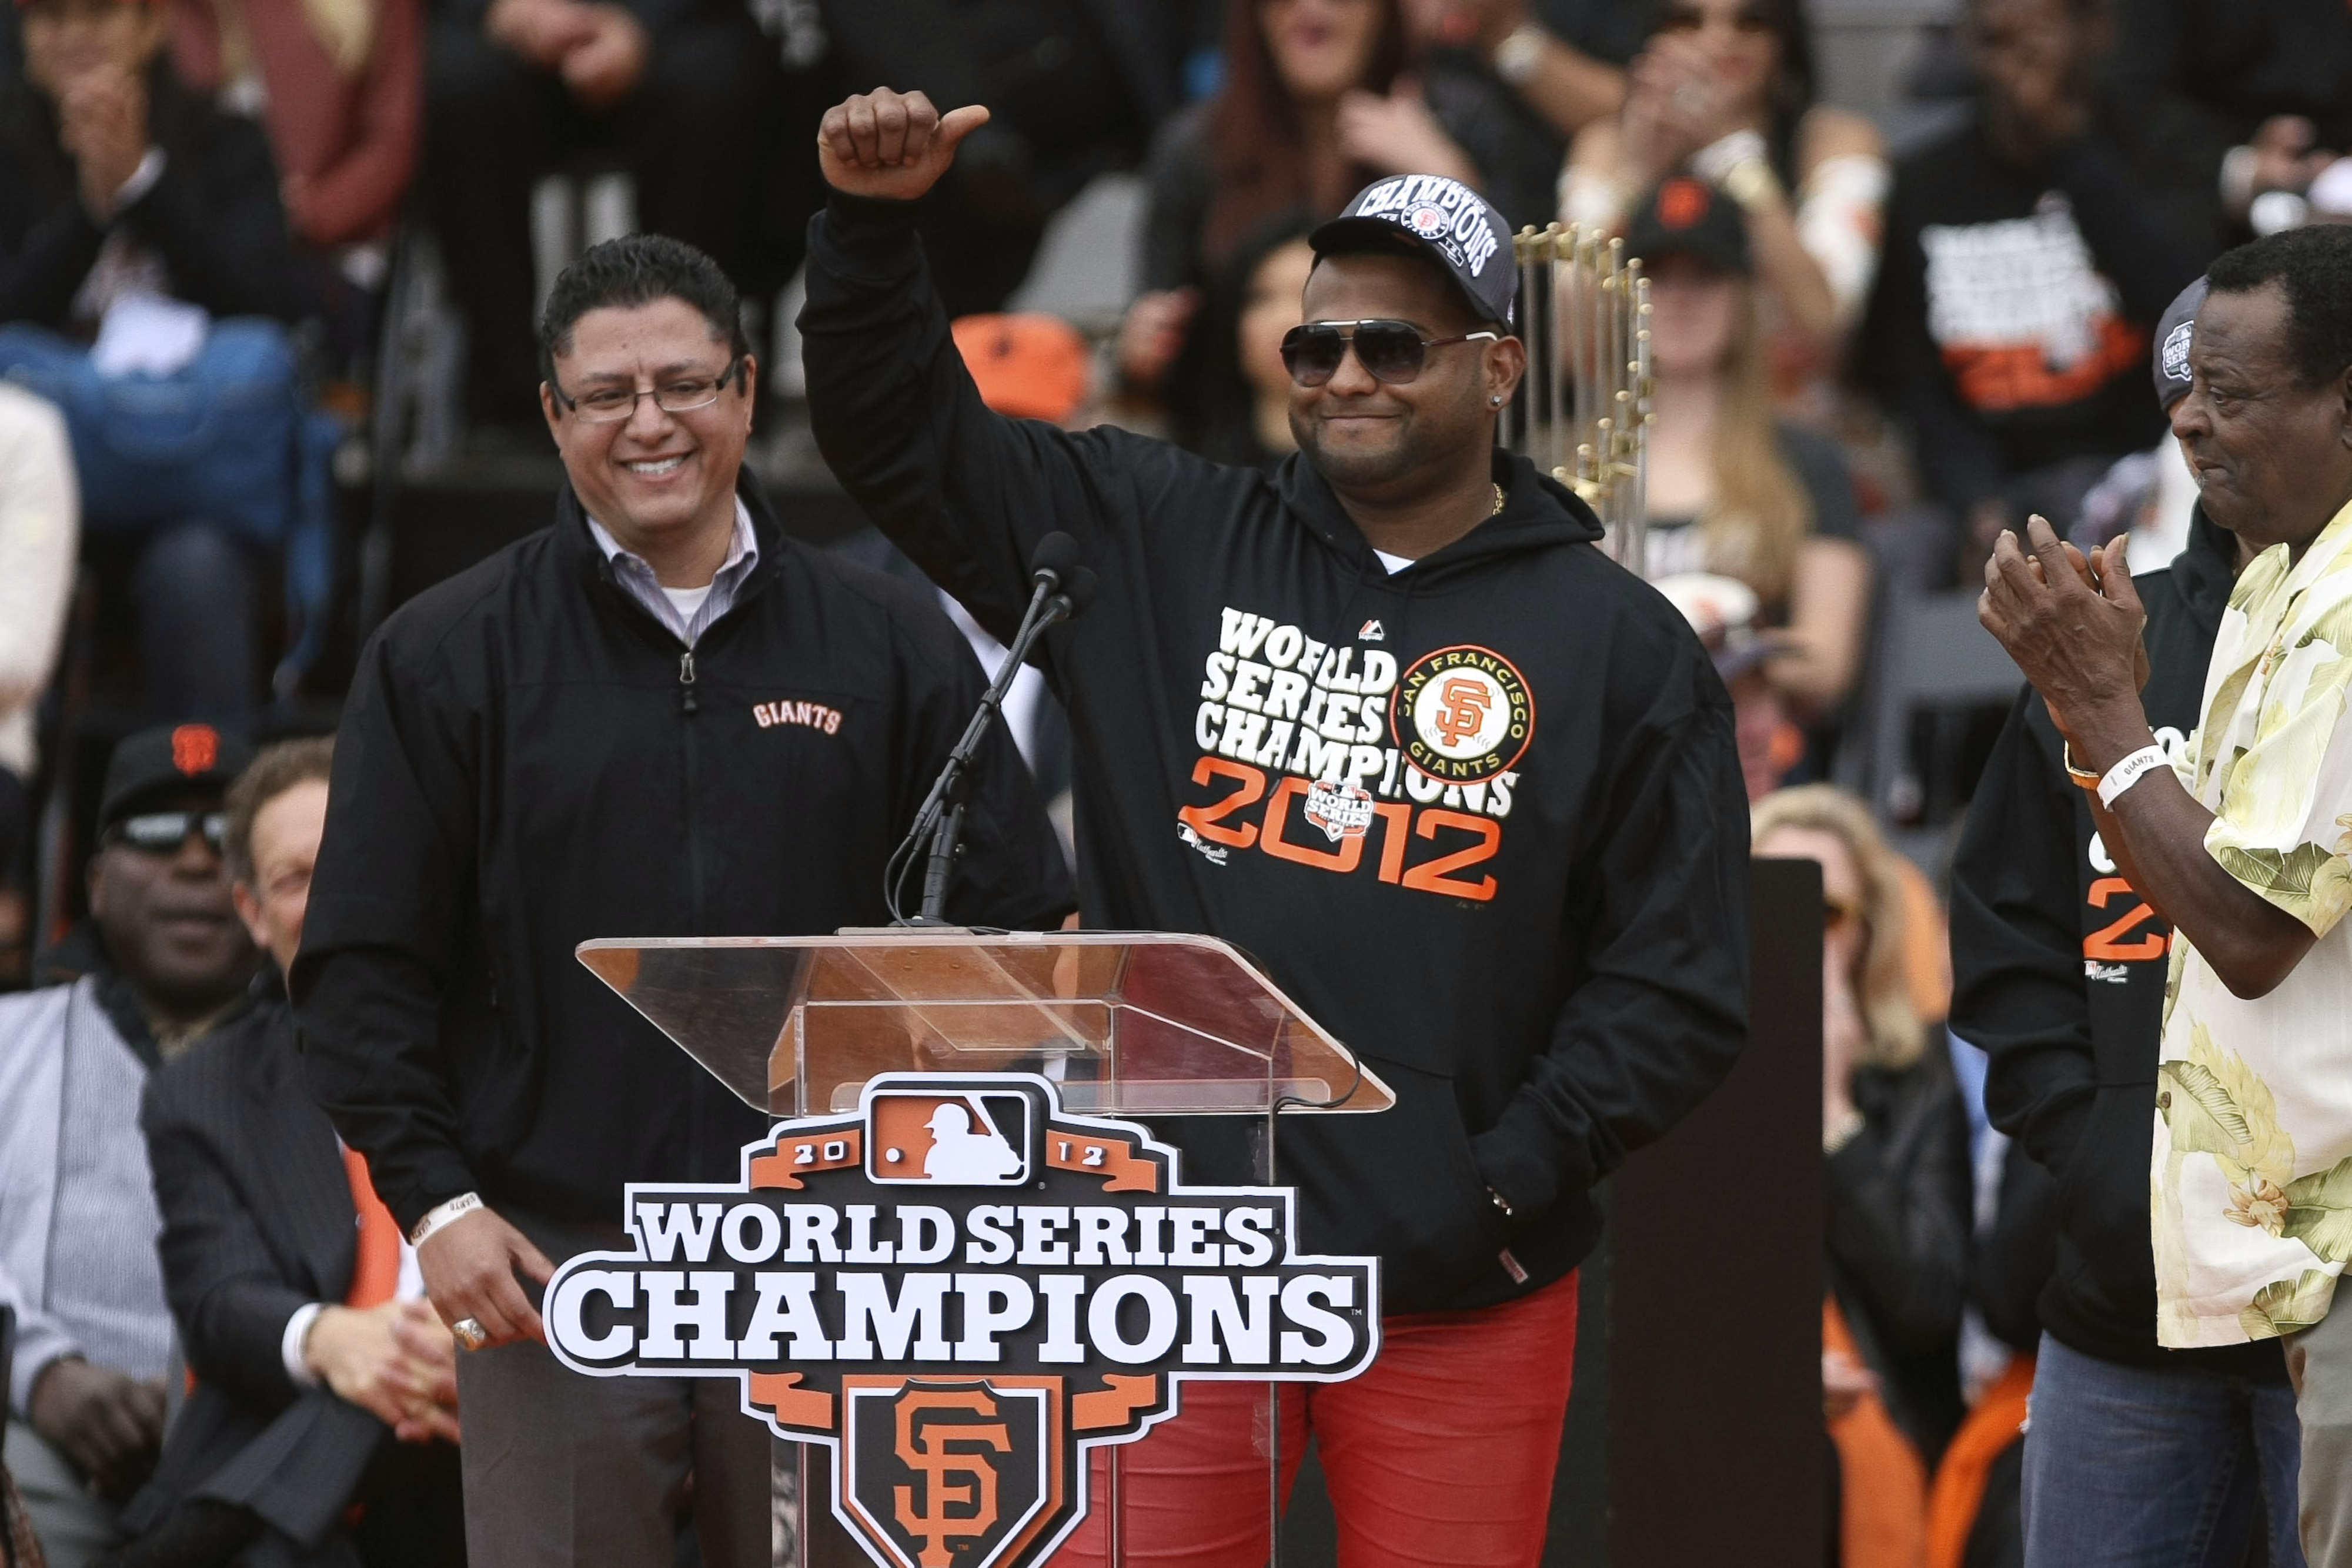 Also the Giants won the World Series in 2012